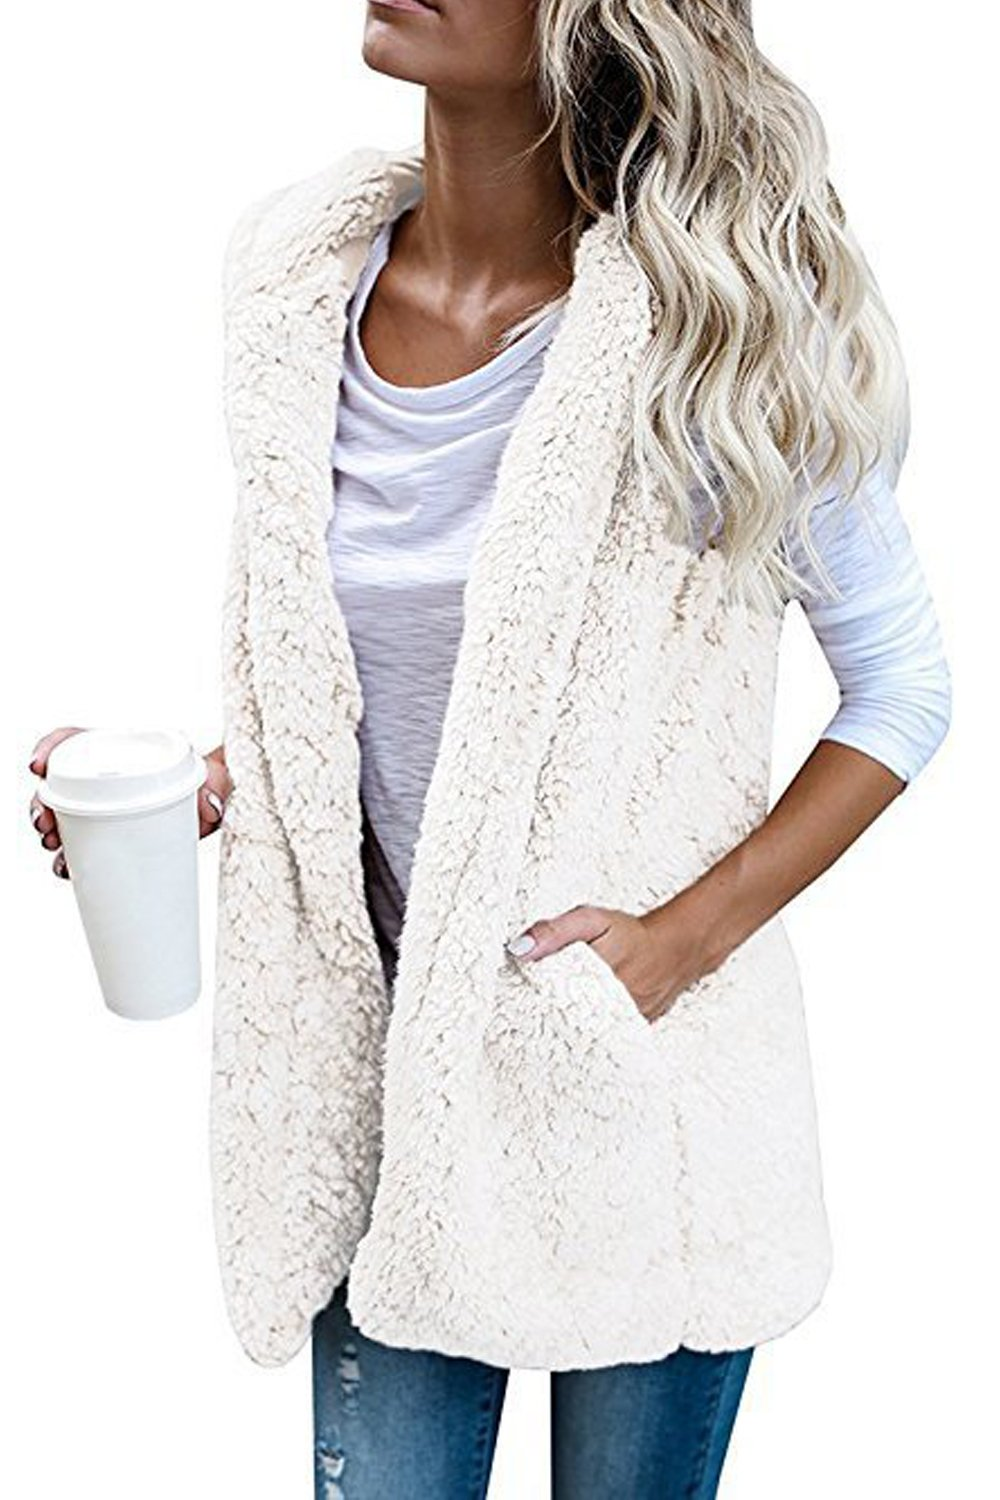 Women Elegant Hooded Open Front Hairy Top Blouse Vest With Pockets CAAOYP008